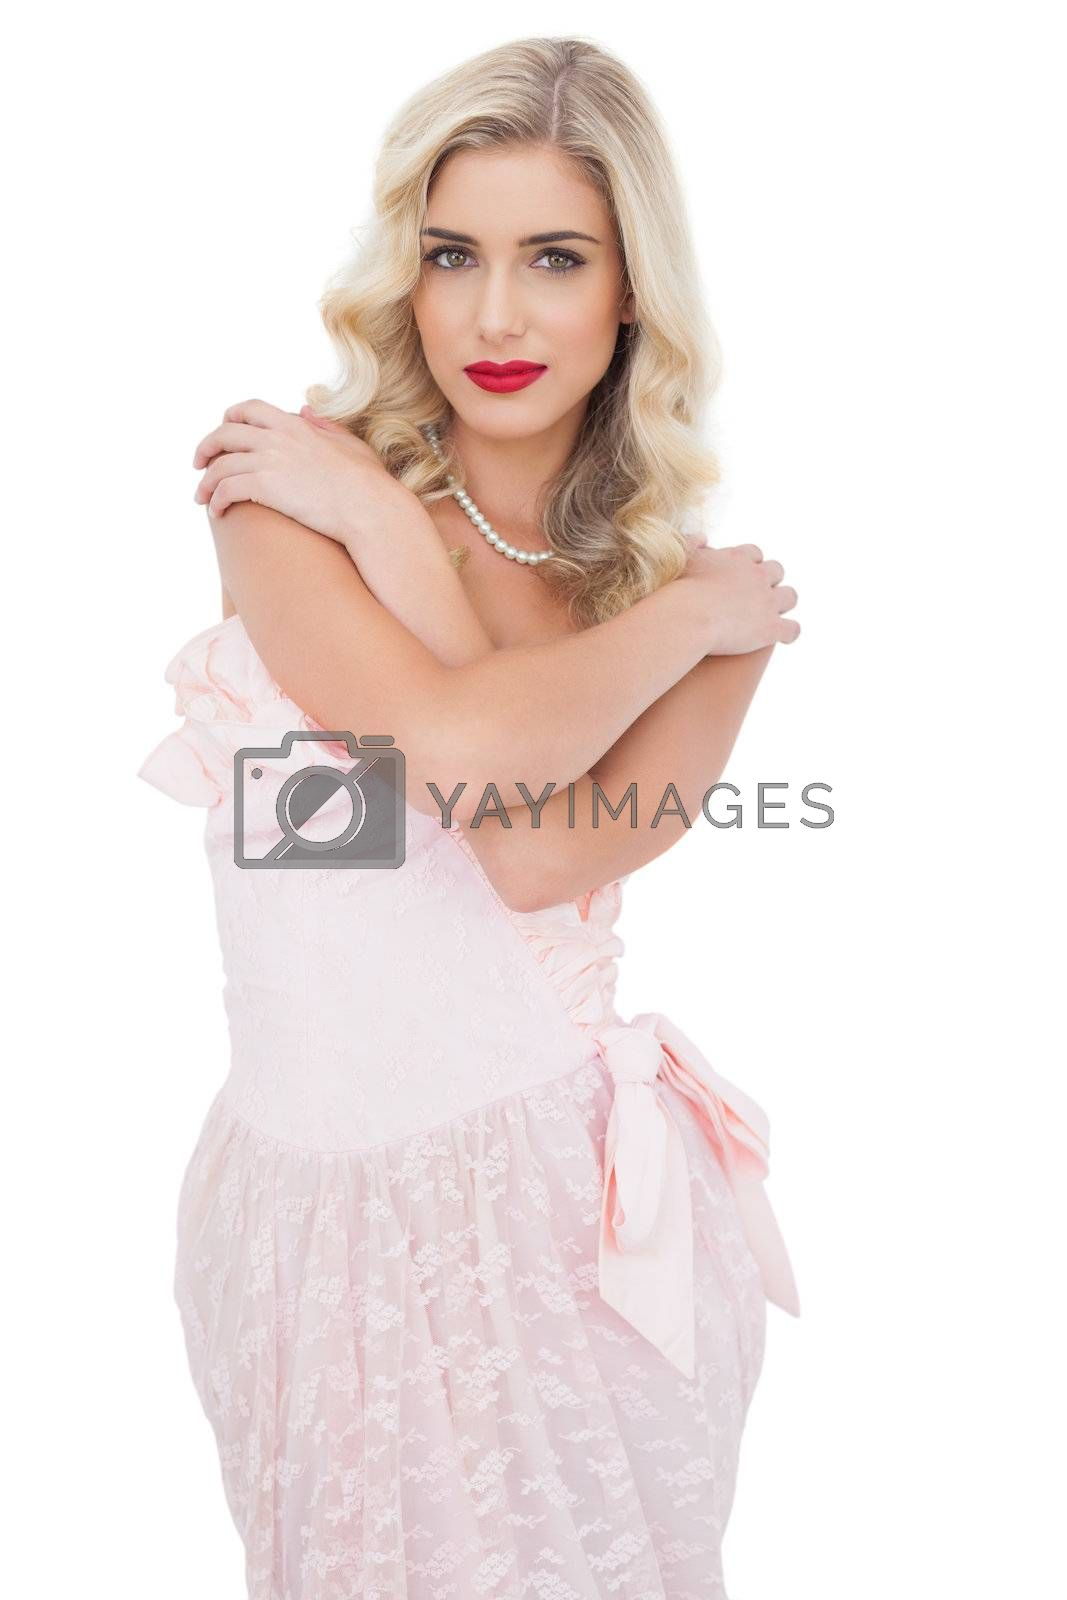 Serious blonde model in pink dress posing holding her shoulders and looking at camera by Wavebreakmedia